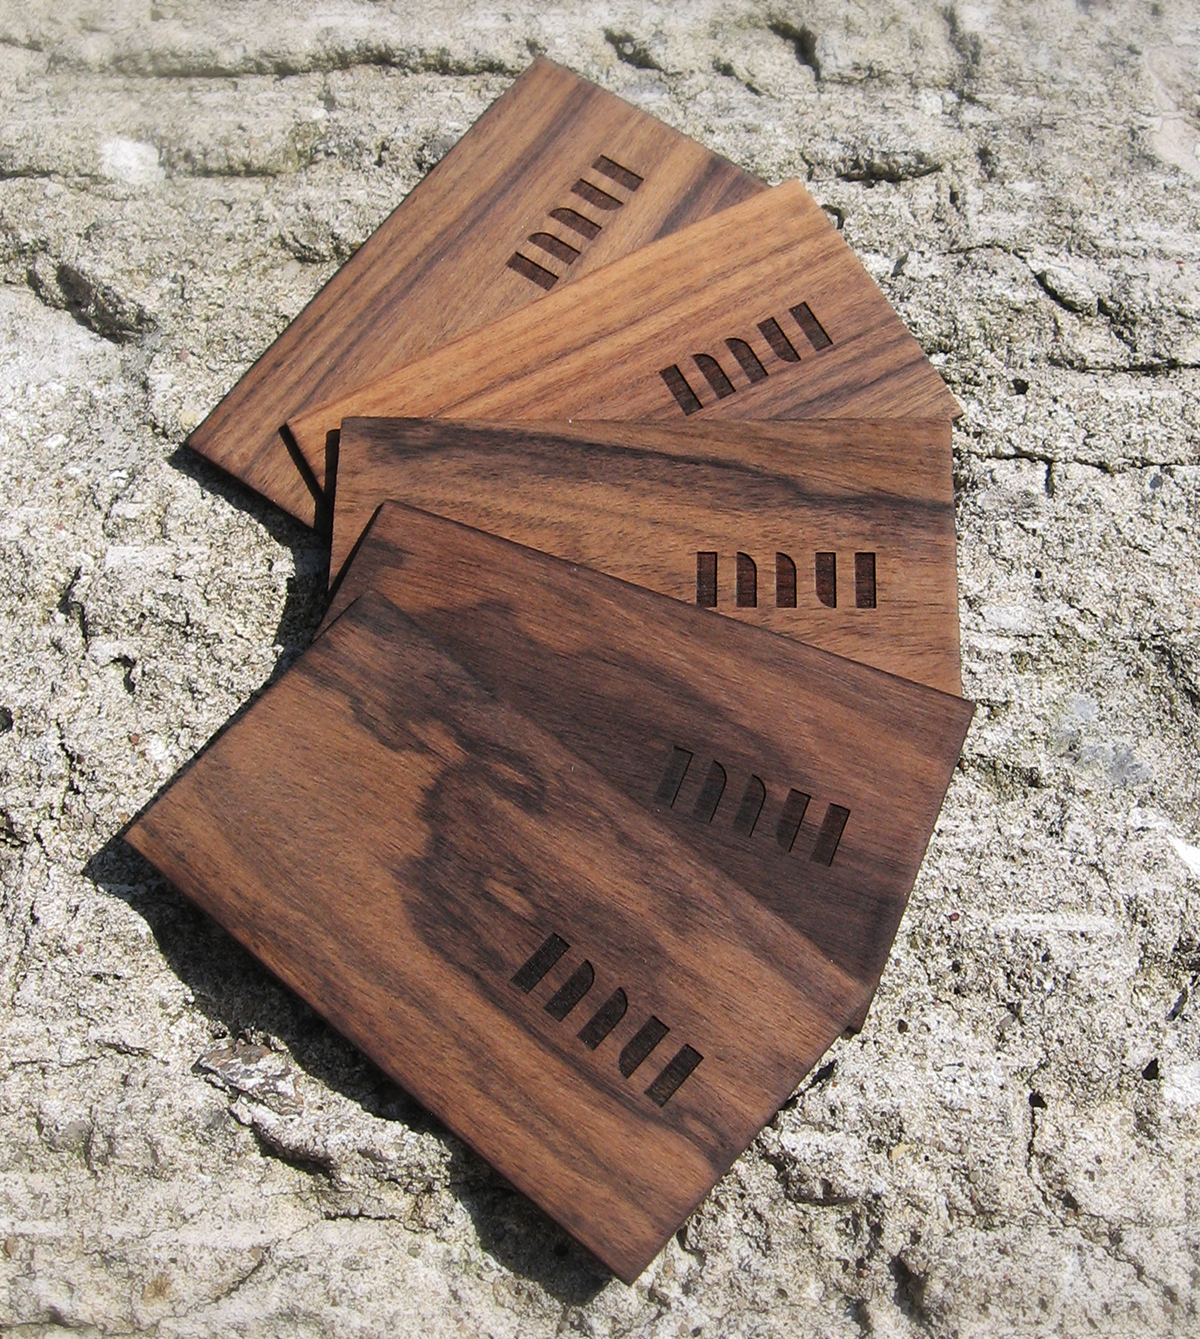 wood card cards business natural logo engraving laser plywood veneer brand identity personal stone